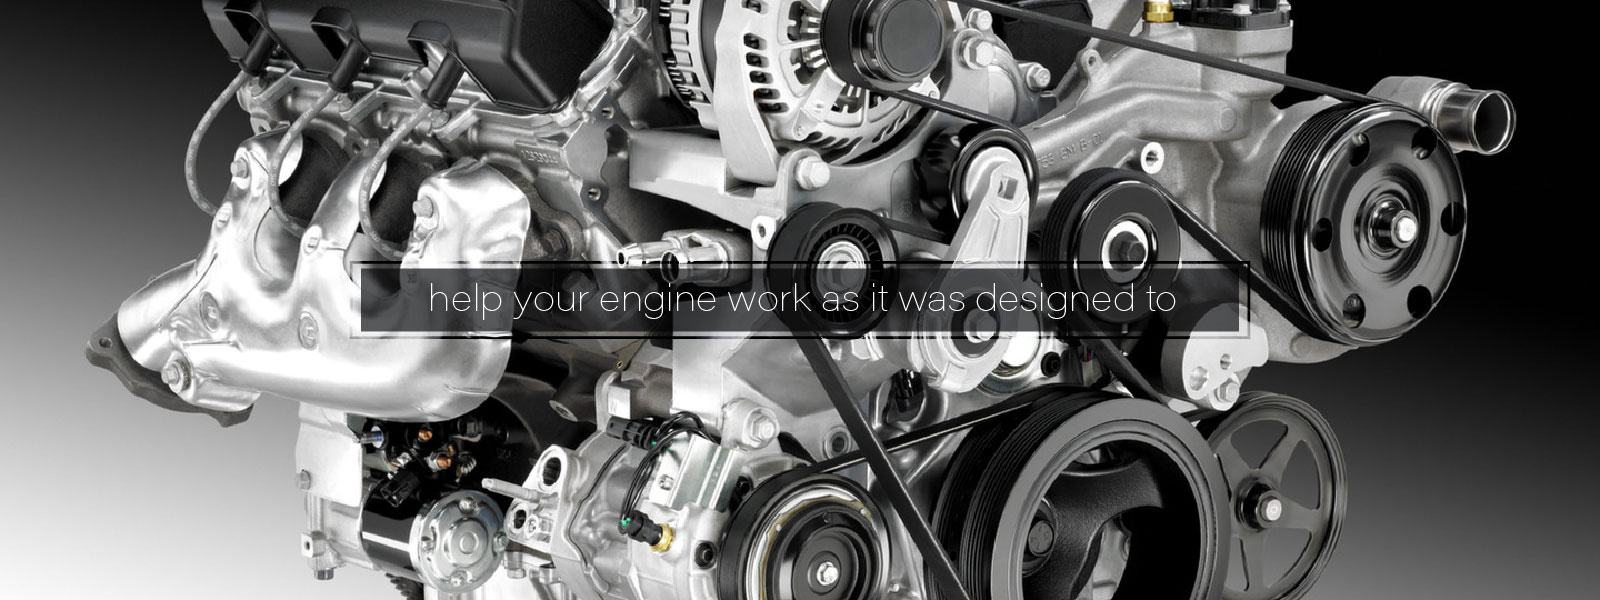 Help Your Engine Work As It Was Designed To